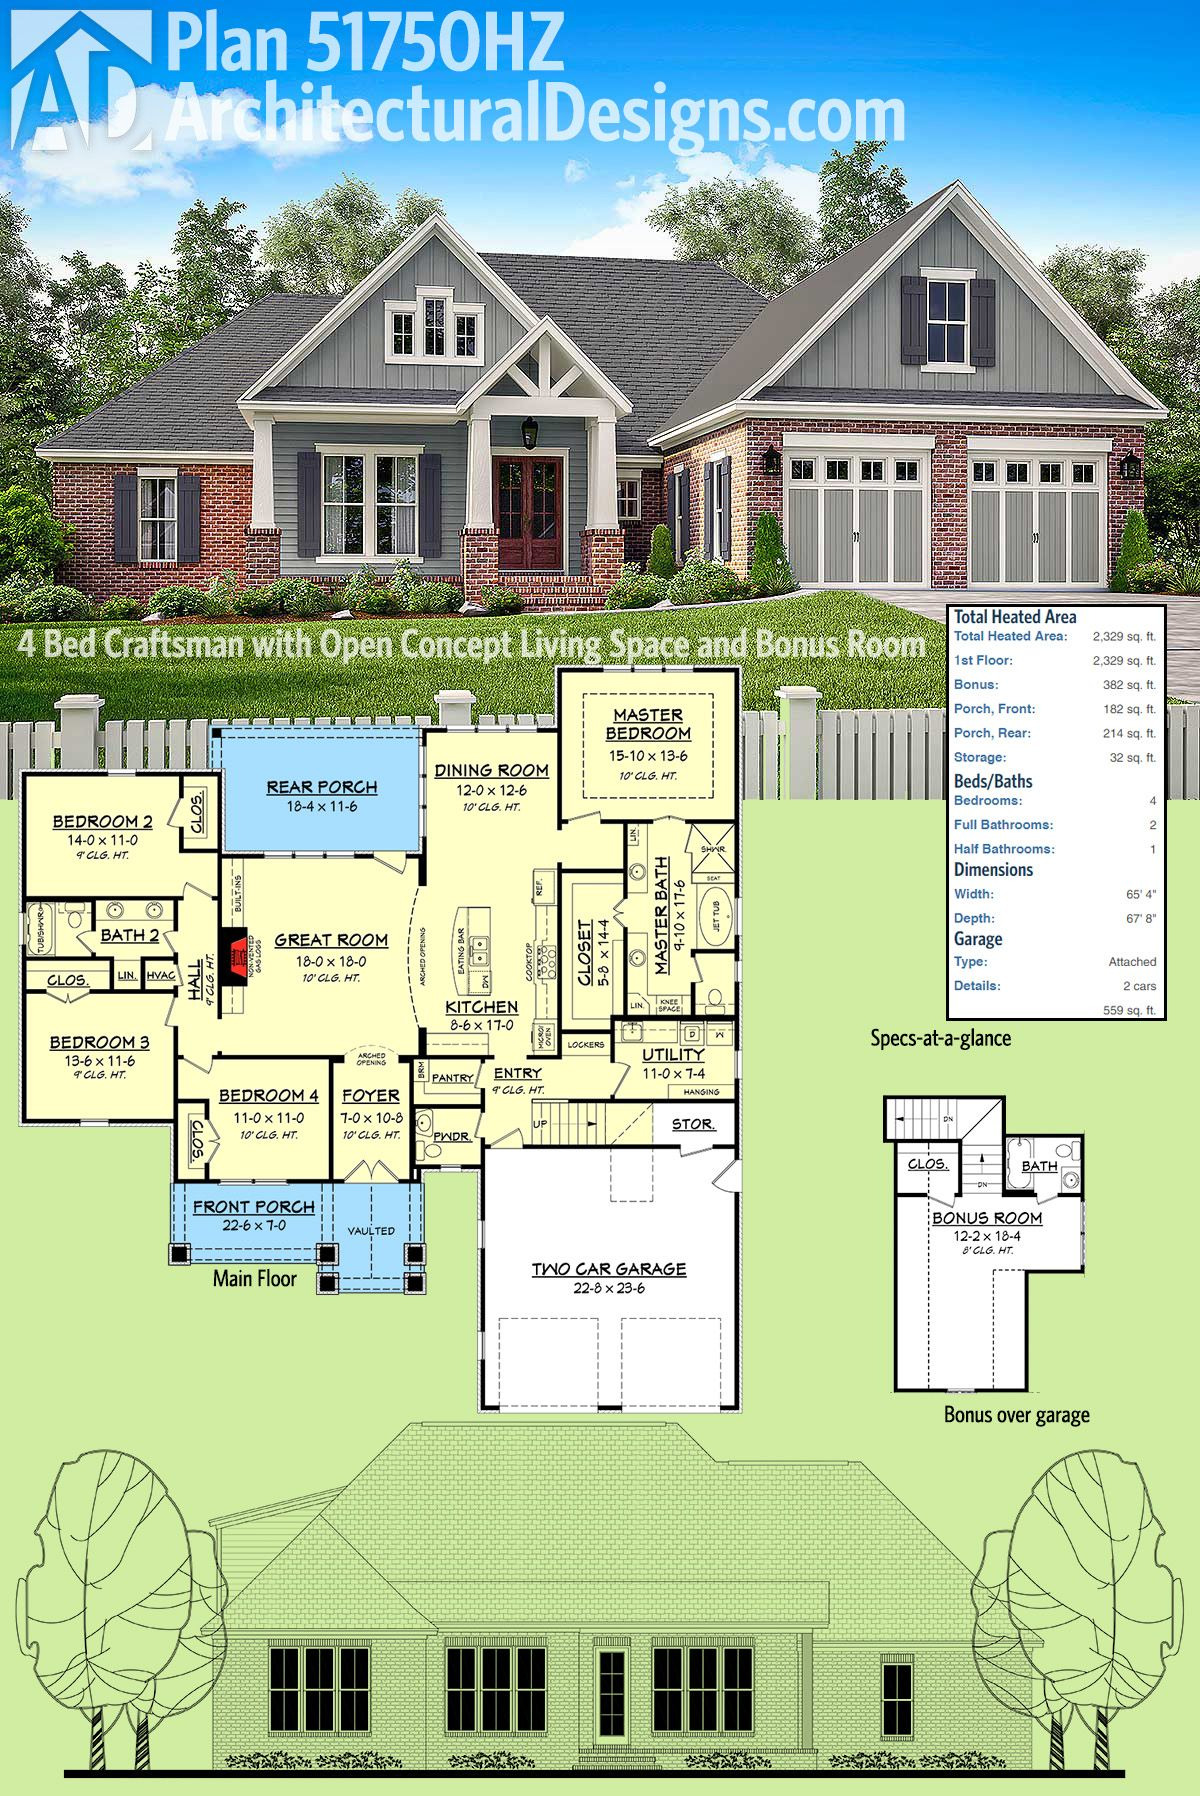 Open Concept Home Plans Beautiful Plan Hz 4 Bed Craftsman with Open Concept Living Space